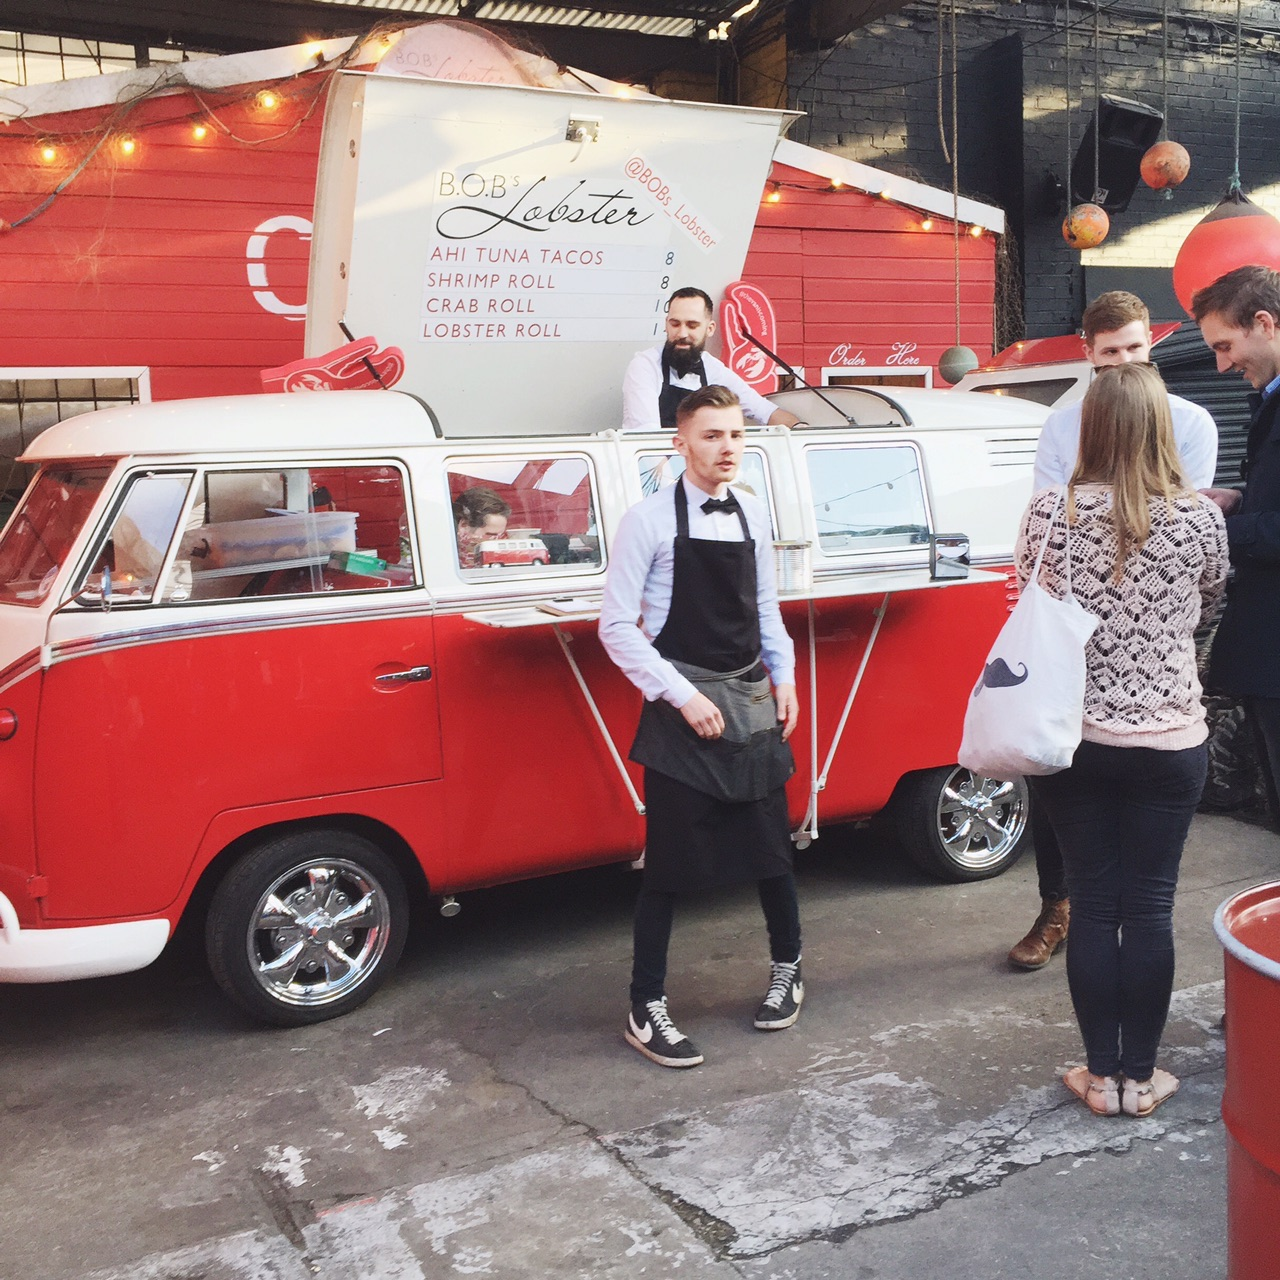 Another cool VW from  Bob's Lobster  if you're craving delicious seafood! #thevaniscoming